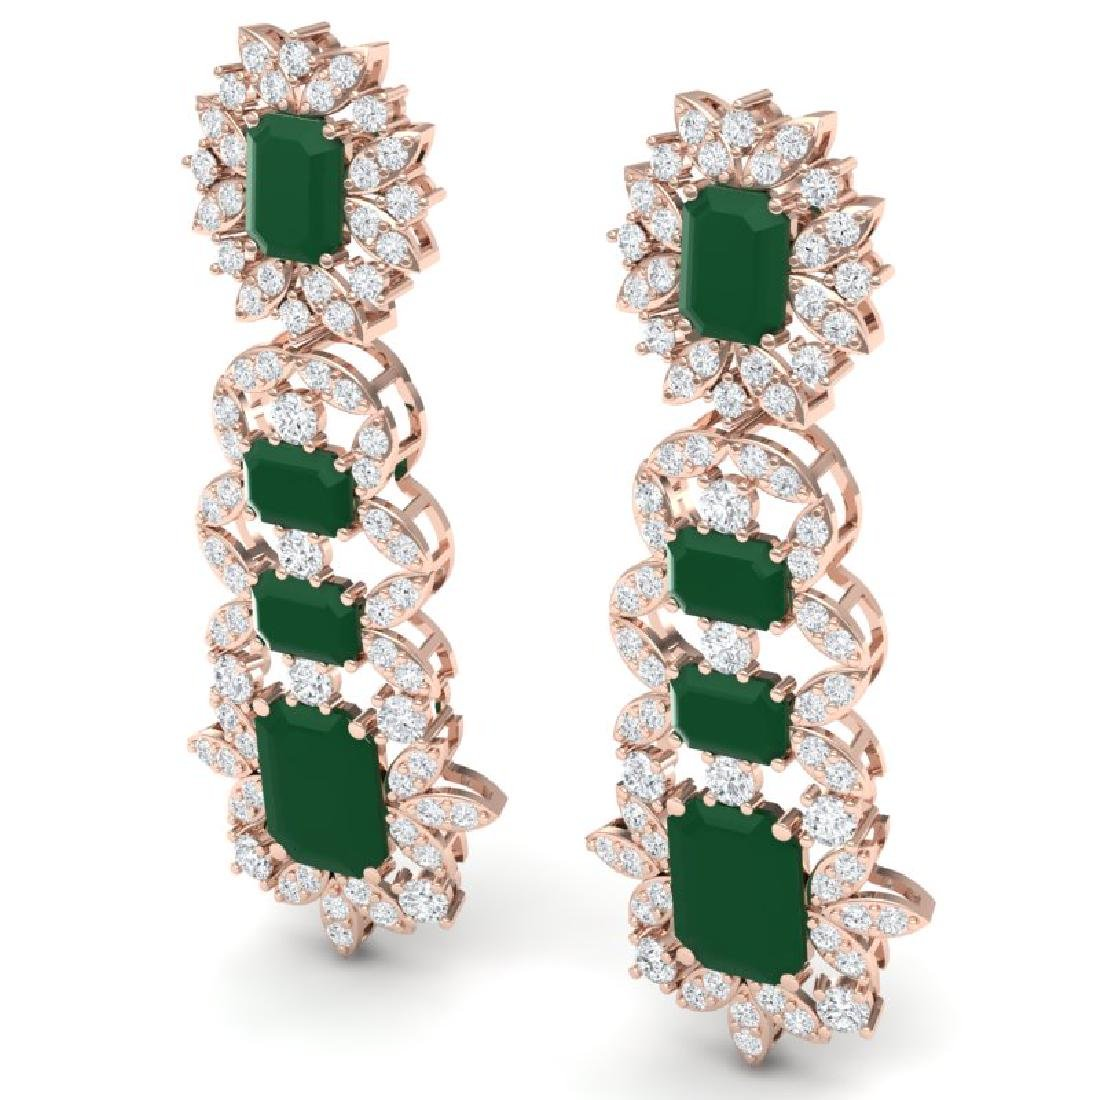 30.25 CTW Royalty Emerald & VS Diamond Earrings 18K - 2